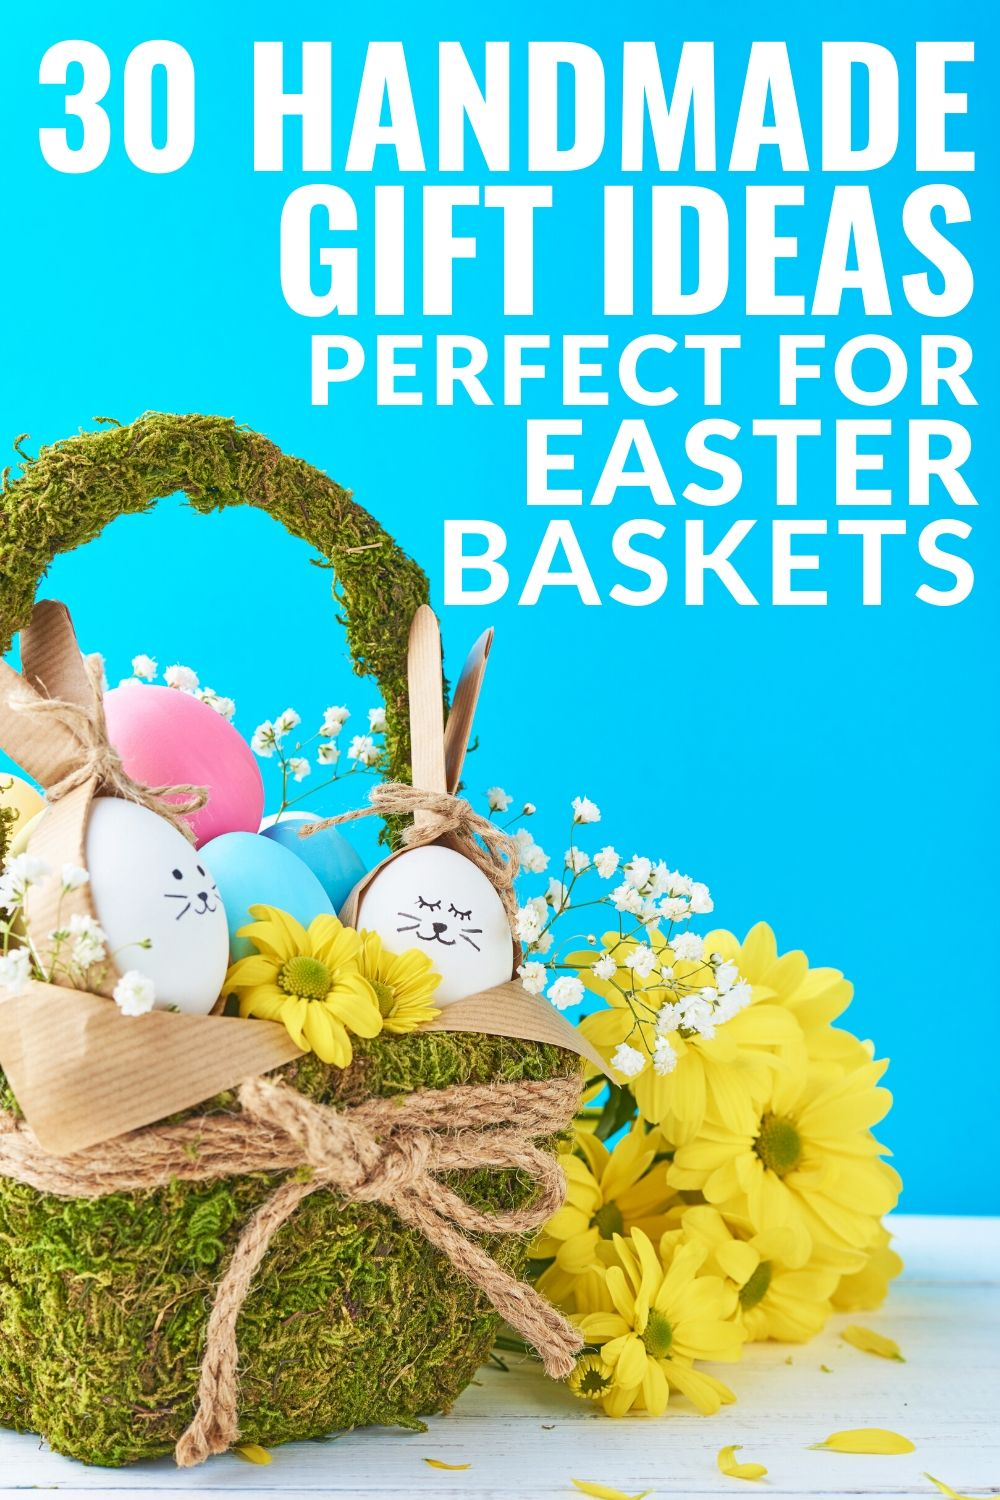 You are going to love these handmade Easter ideas and adding them to your kids' Easter baskets! Make a few of these then drop them in the basket for children of all ages! #easter #easterbasket #handmade #giftideas